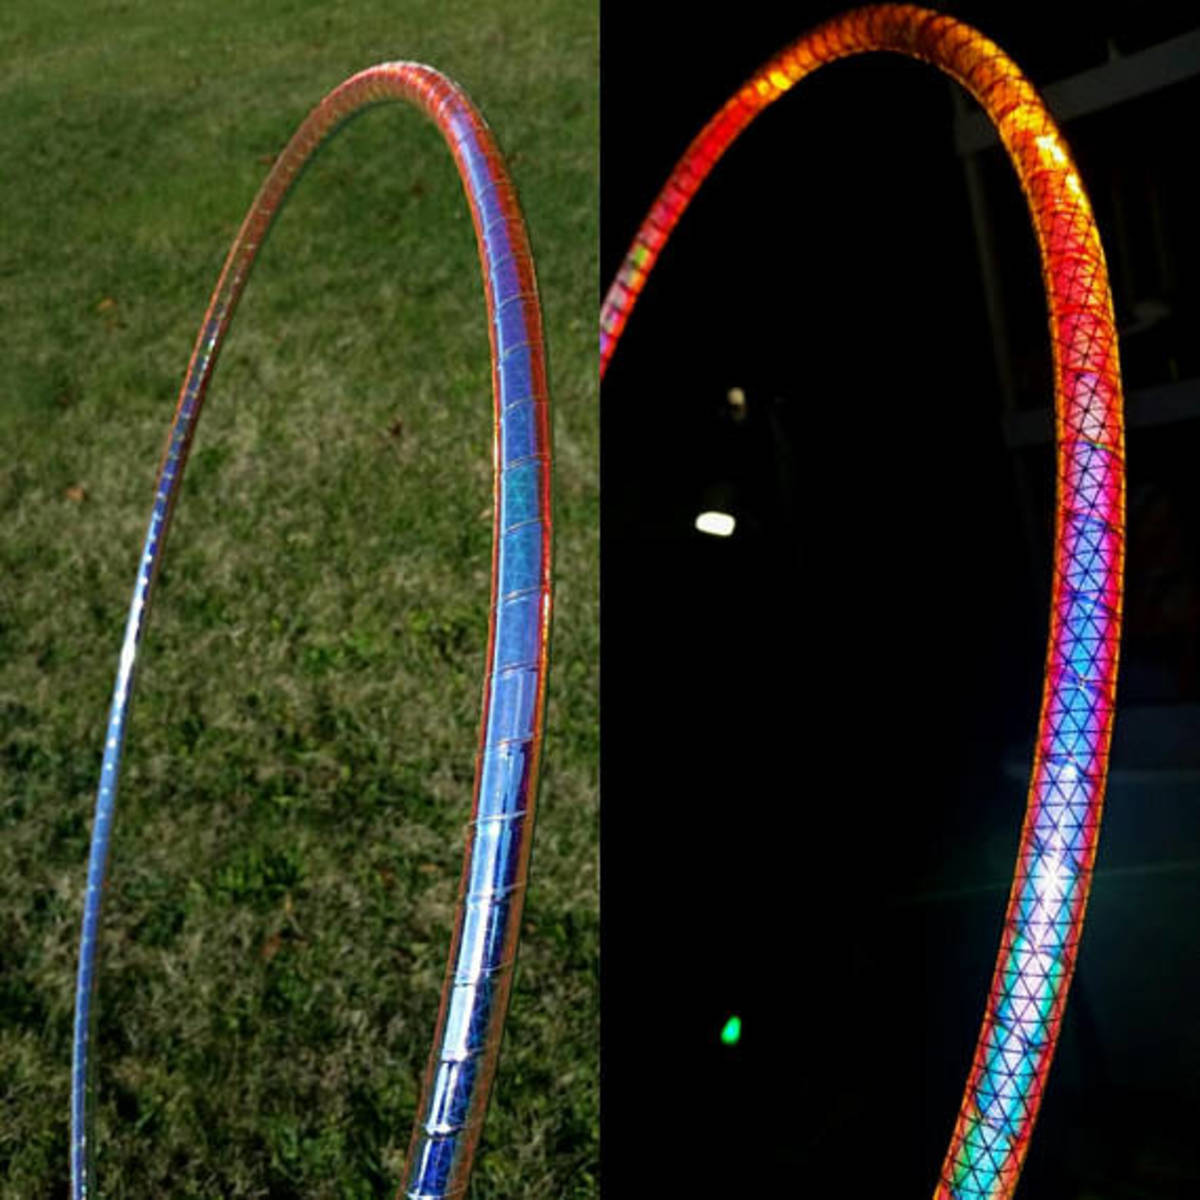 """Spectrum"" reflective hoop without flash and with flash"